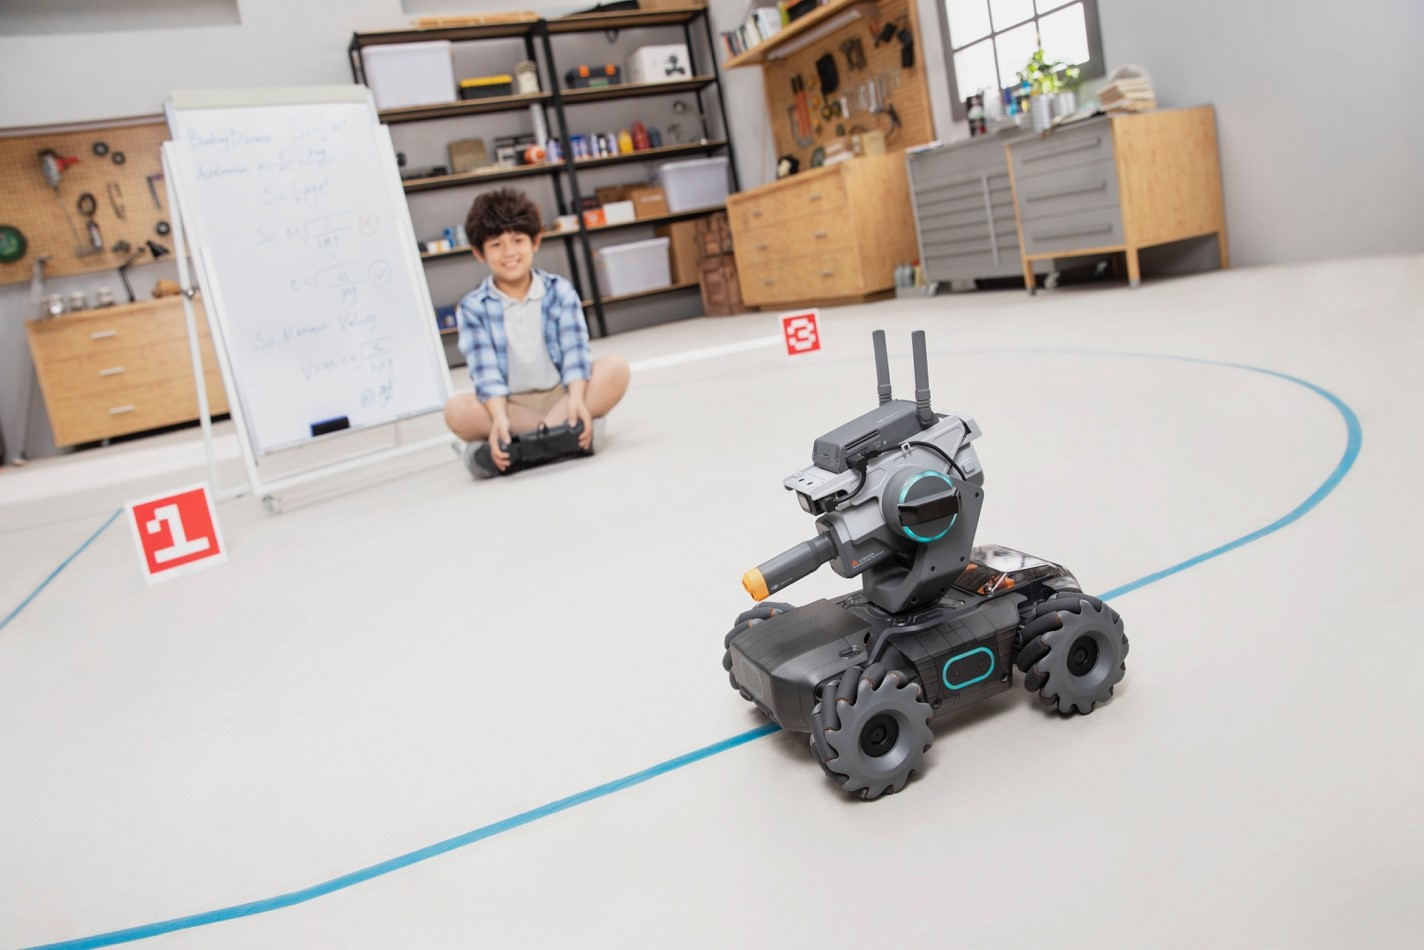 DJI Unveils The RoboMaster S1,An Advanced Educational Robot